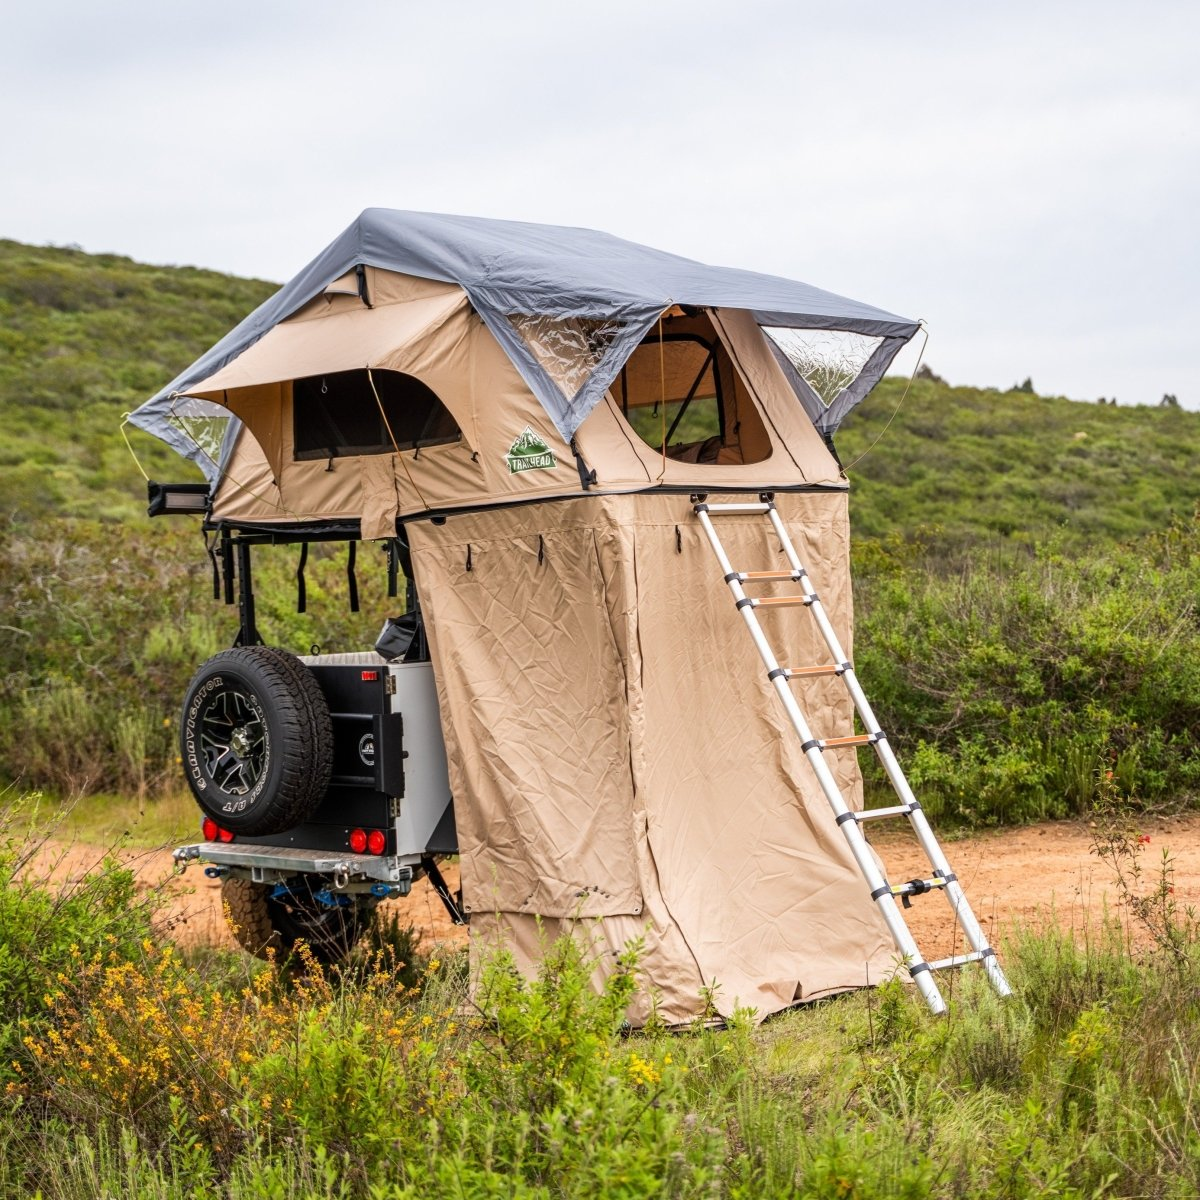 Tuff Stuff® Overland Roof Top Tent Annex Room, w/ Floor, Delta & TRAILHEAD™ - Tuff Stuff Overland - Annex Room